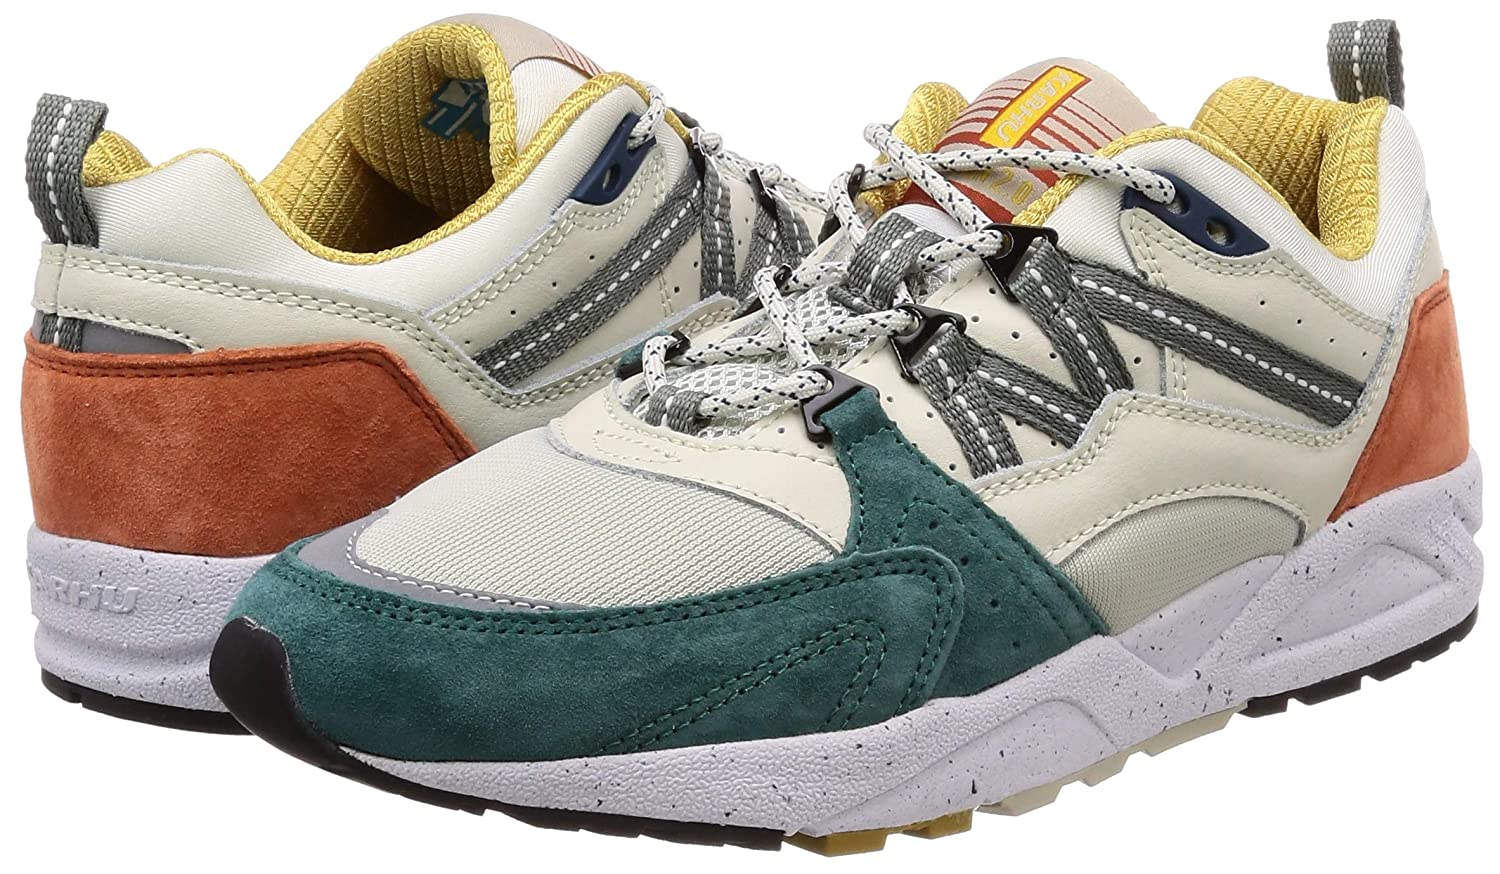 Karhu Man's 2.0 Fusion 2.0 Man's Beige, Teal and Rust Leather and Nylon Sneaker 11|Multicolour B07F3XN2X7 a0f6f5